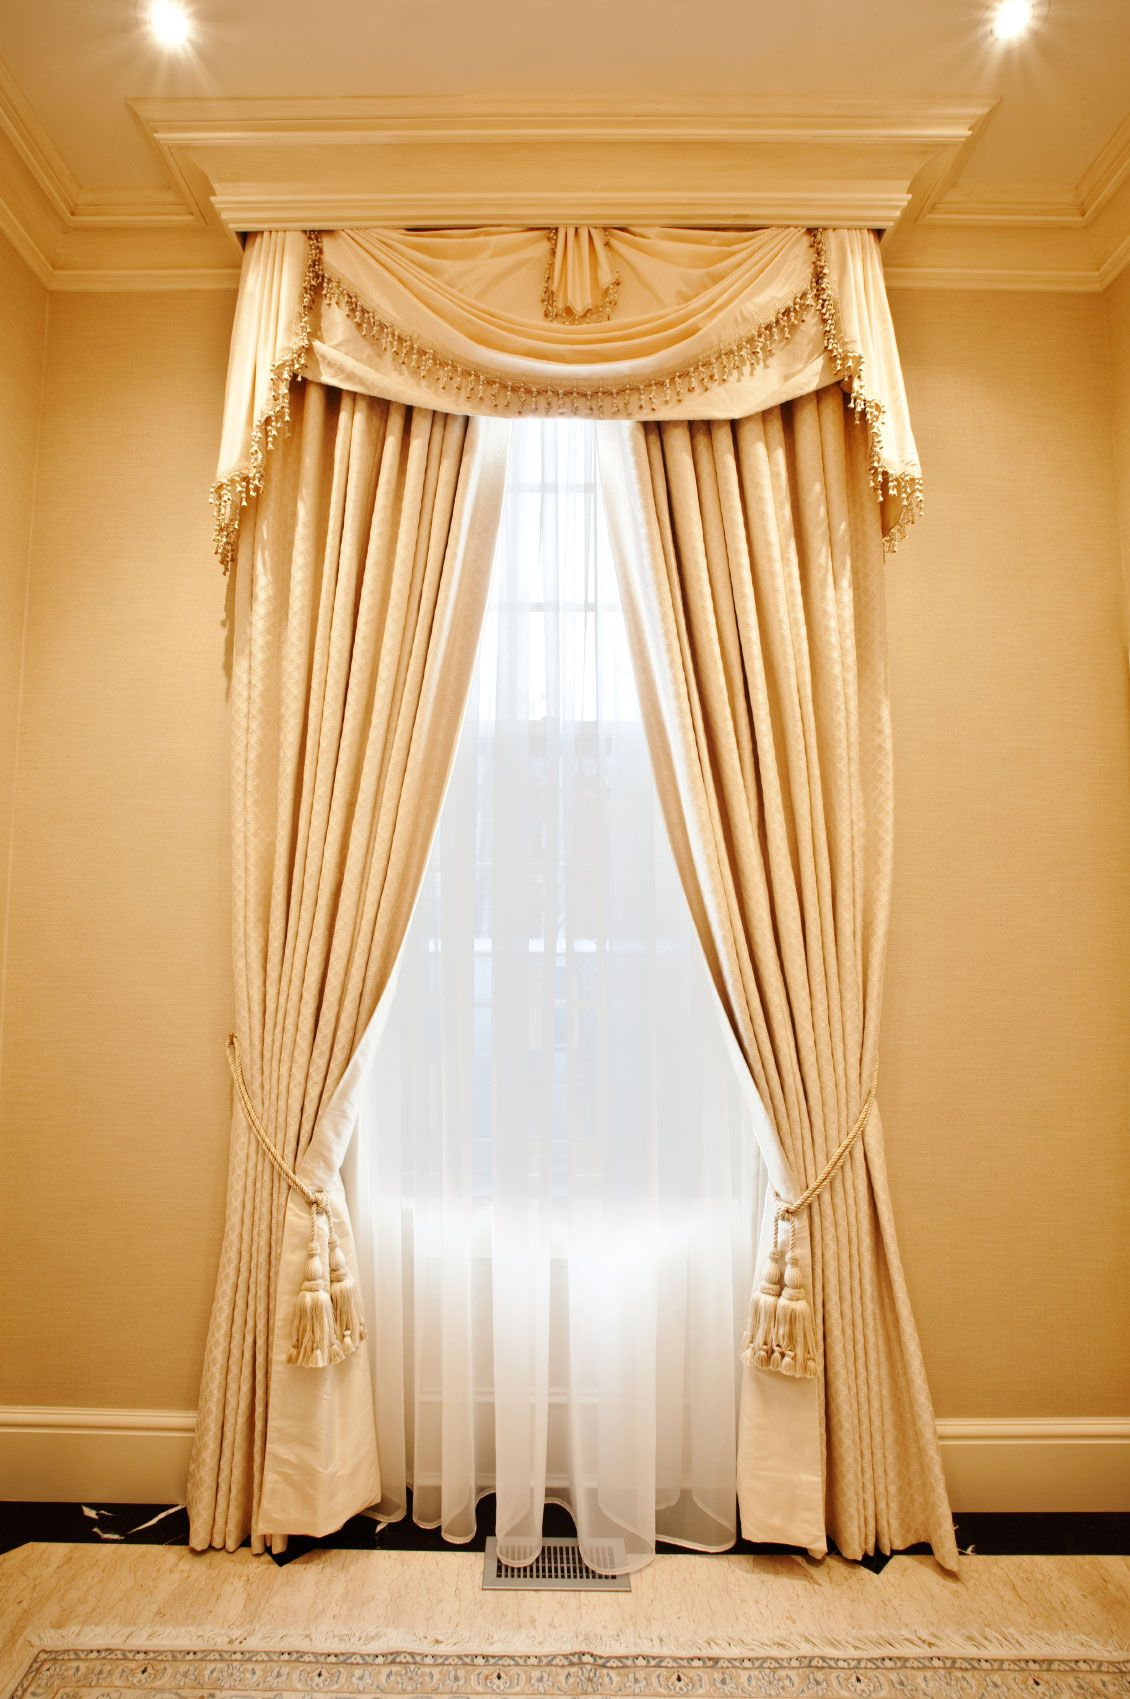 HOME DECOR – IDEAS – Curtain Ideas To Enhance The Beauty Of Rooms